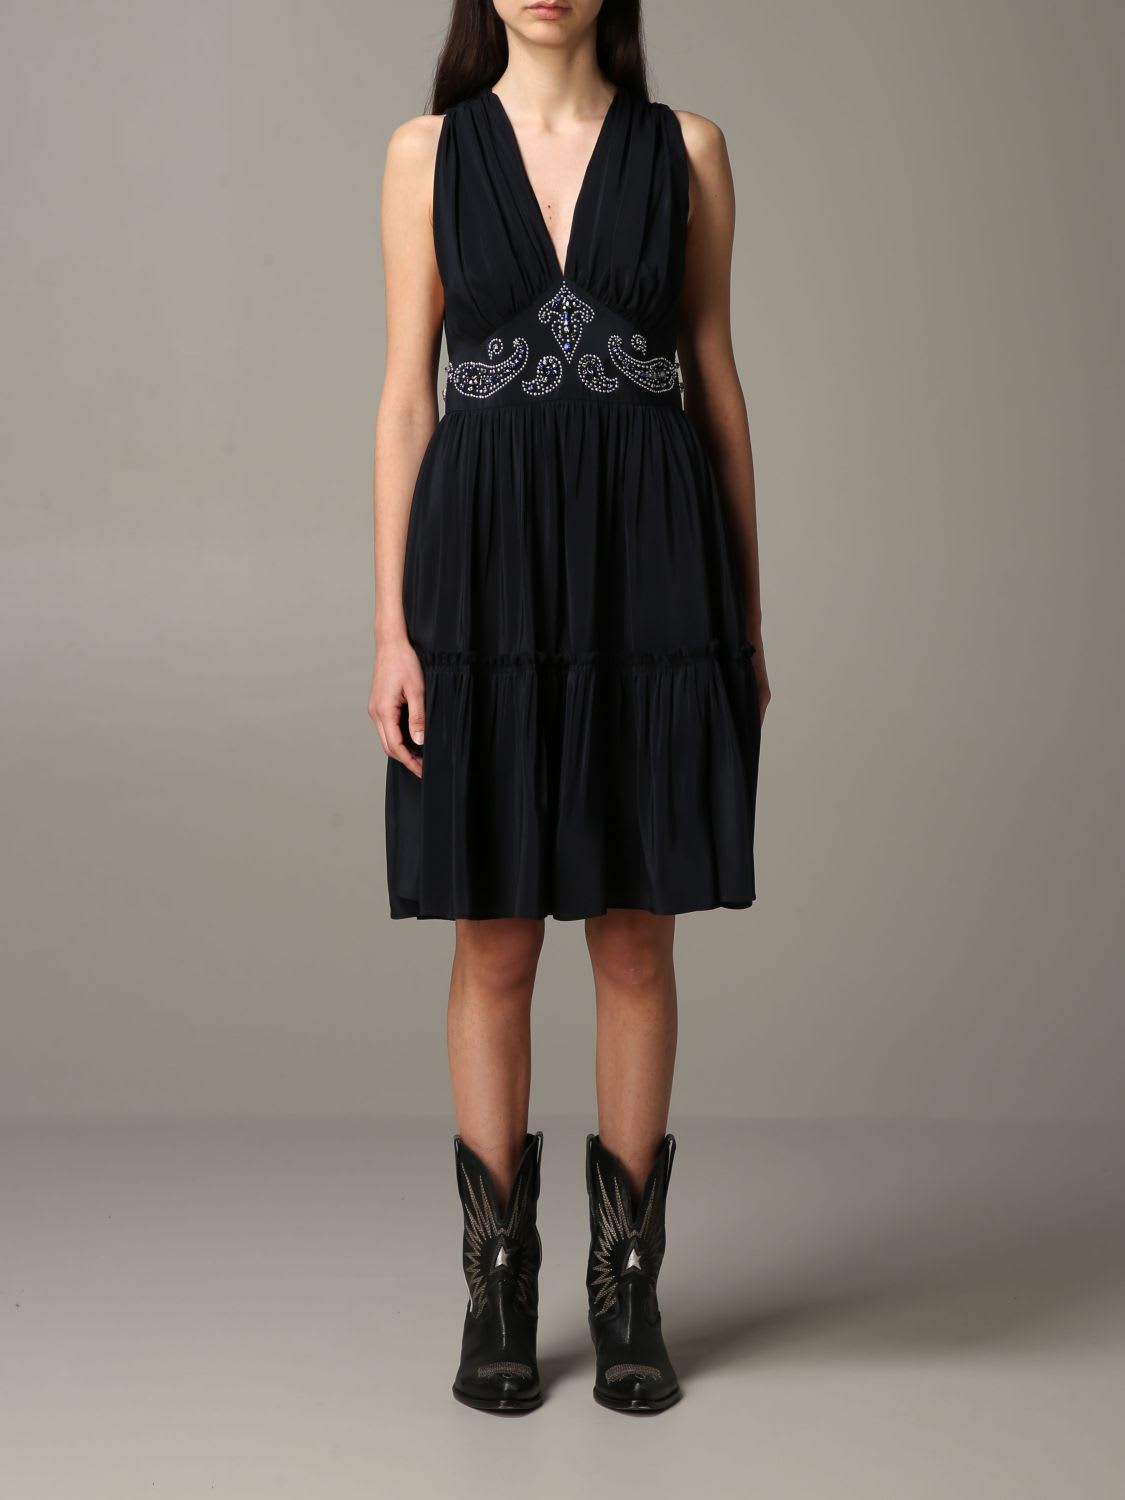 Buy Golden Goose Dress Golden Goose Silk Dress With Texas-style Details online, shop Golden Goose with free shipping